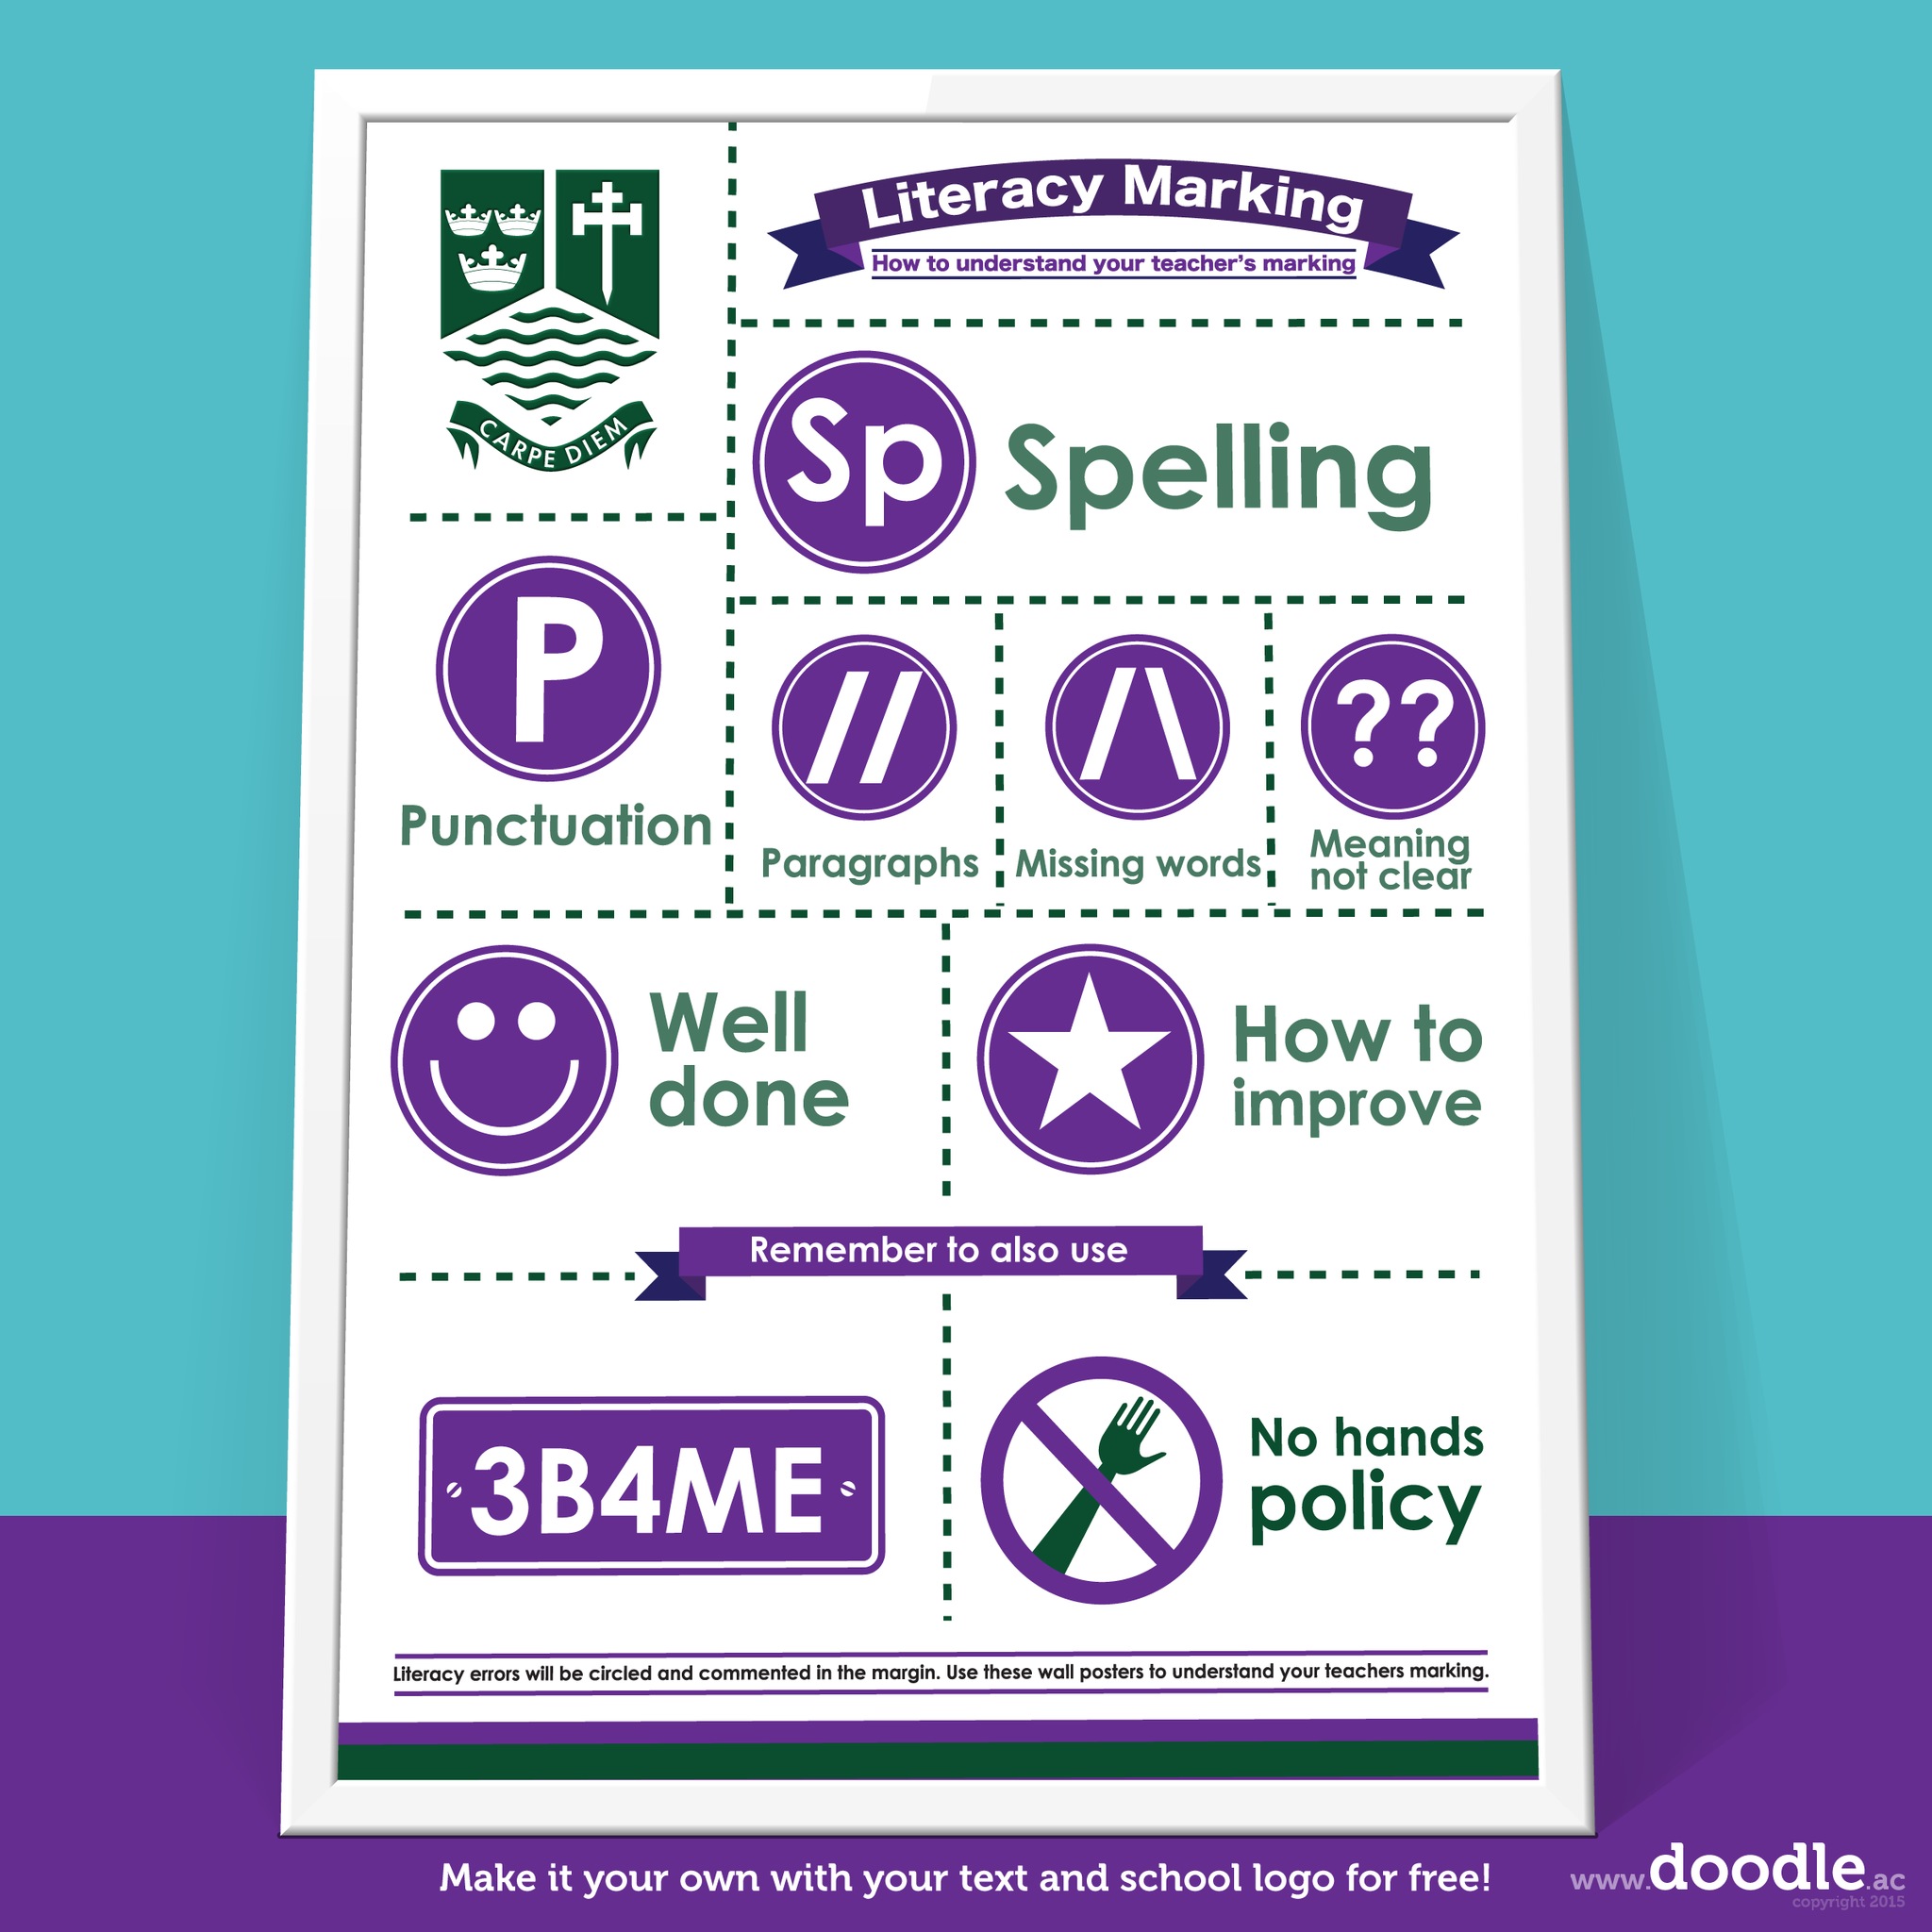 literacy marking poster - doodle education